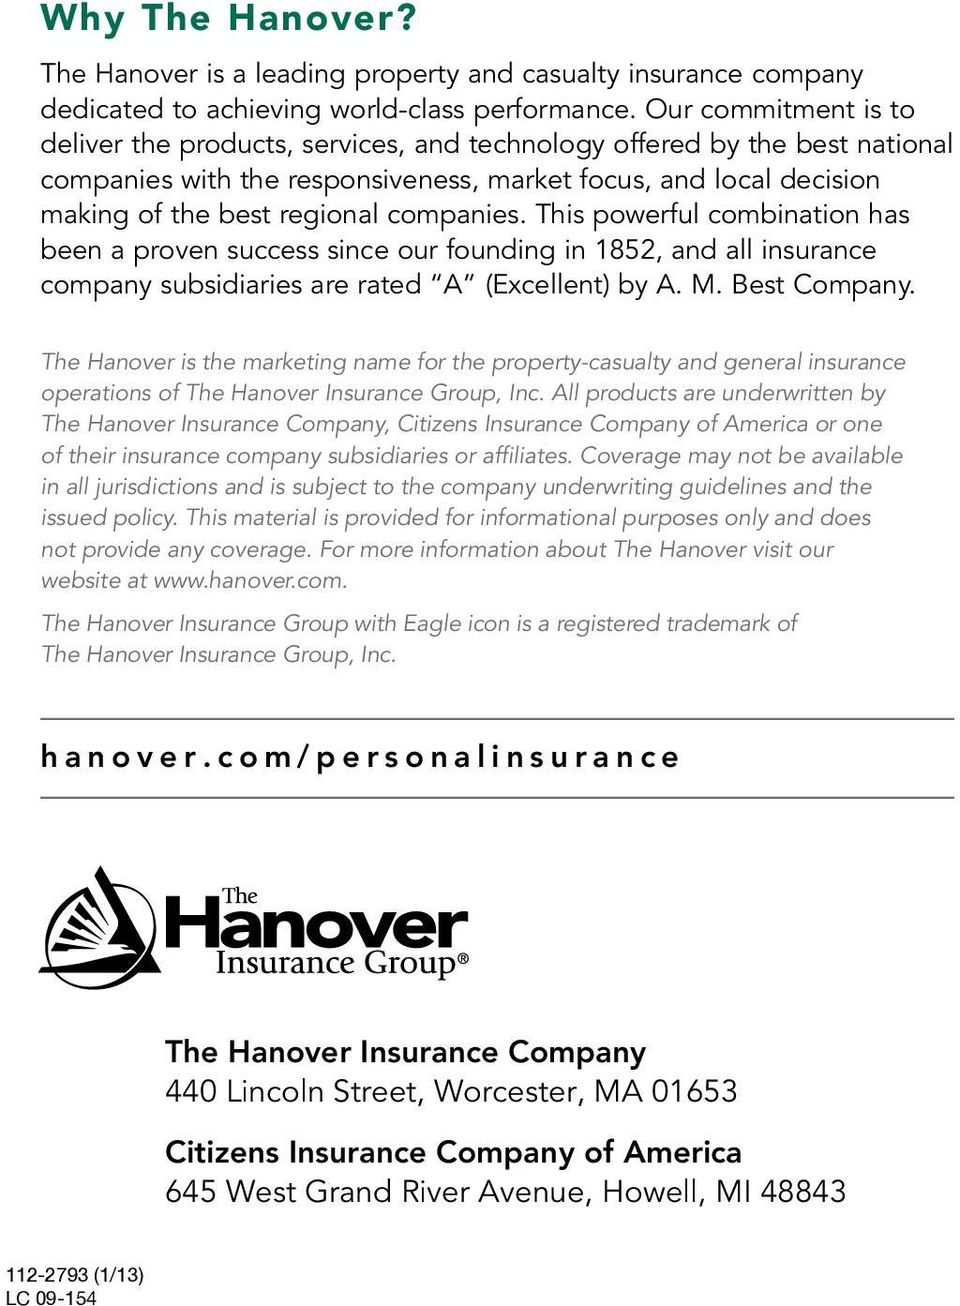 companies. This powerful combination has been a proven success since our founding in 1852, and all insurance company subsidiaries are rated A (Excellent) by A. M. Best Company.